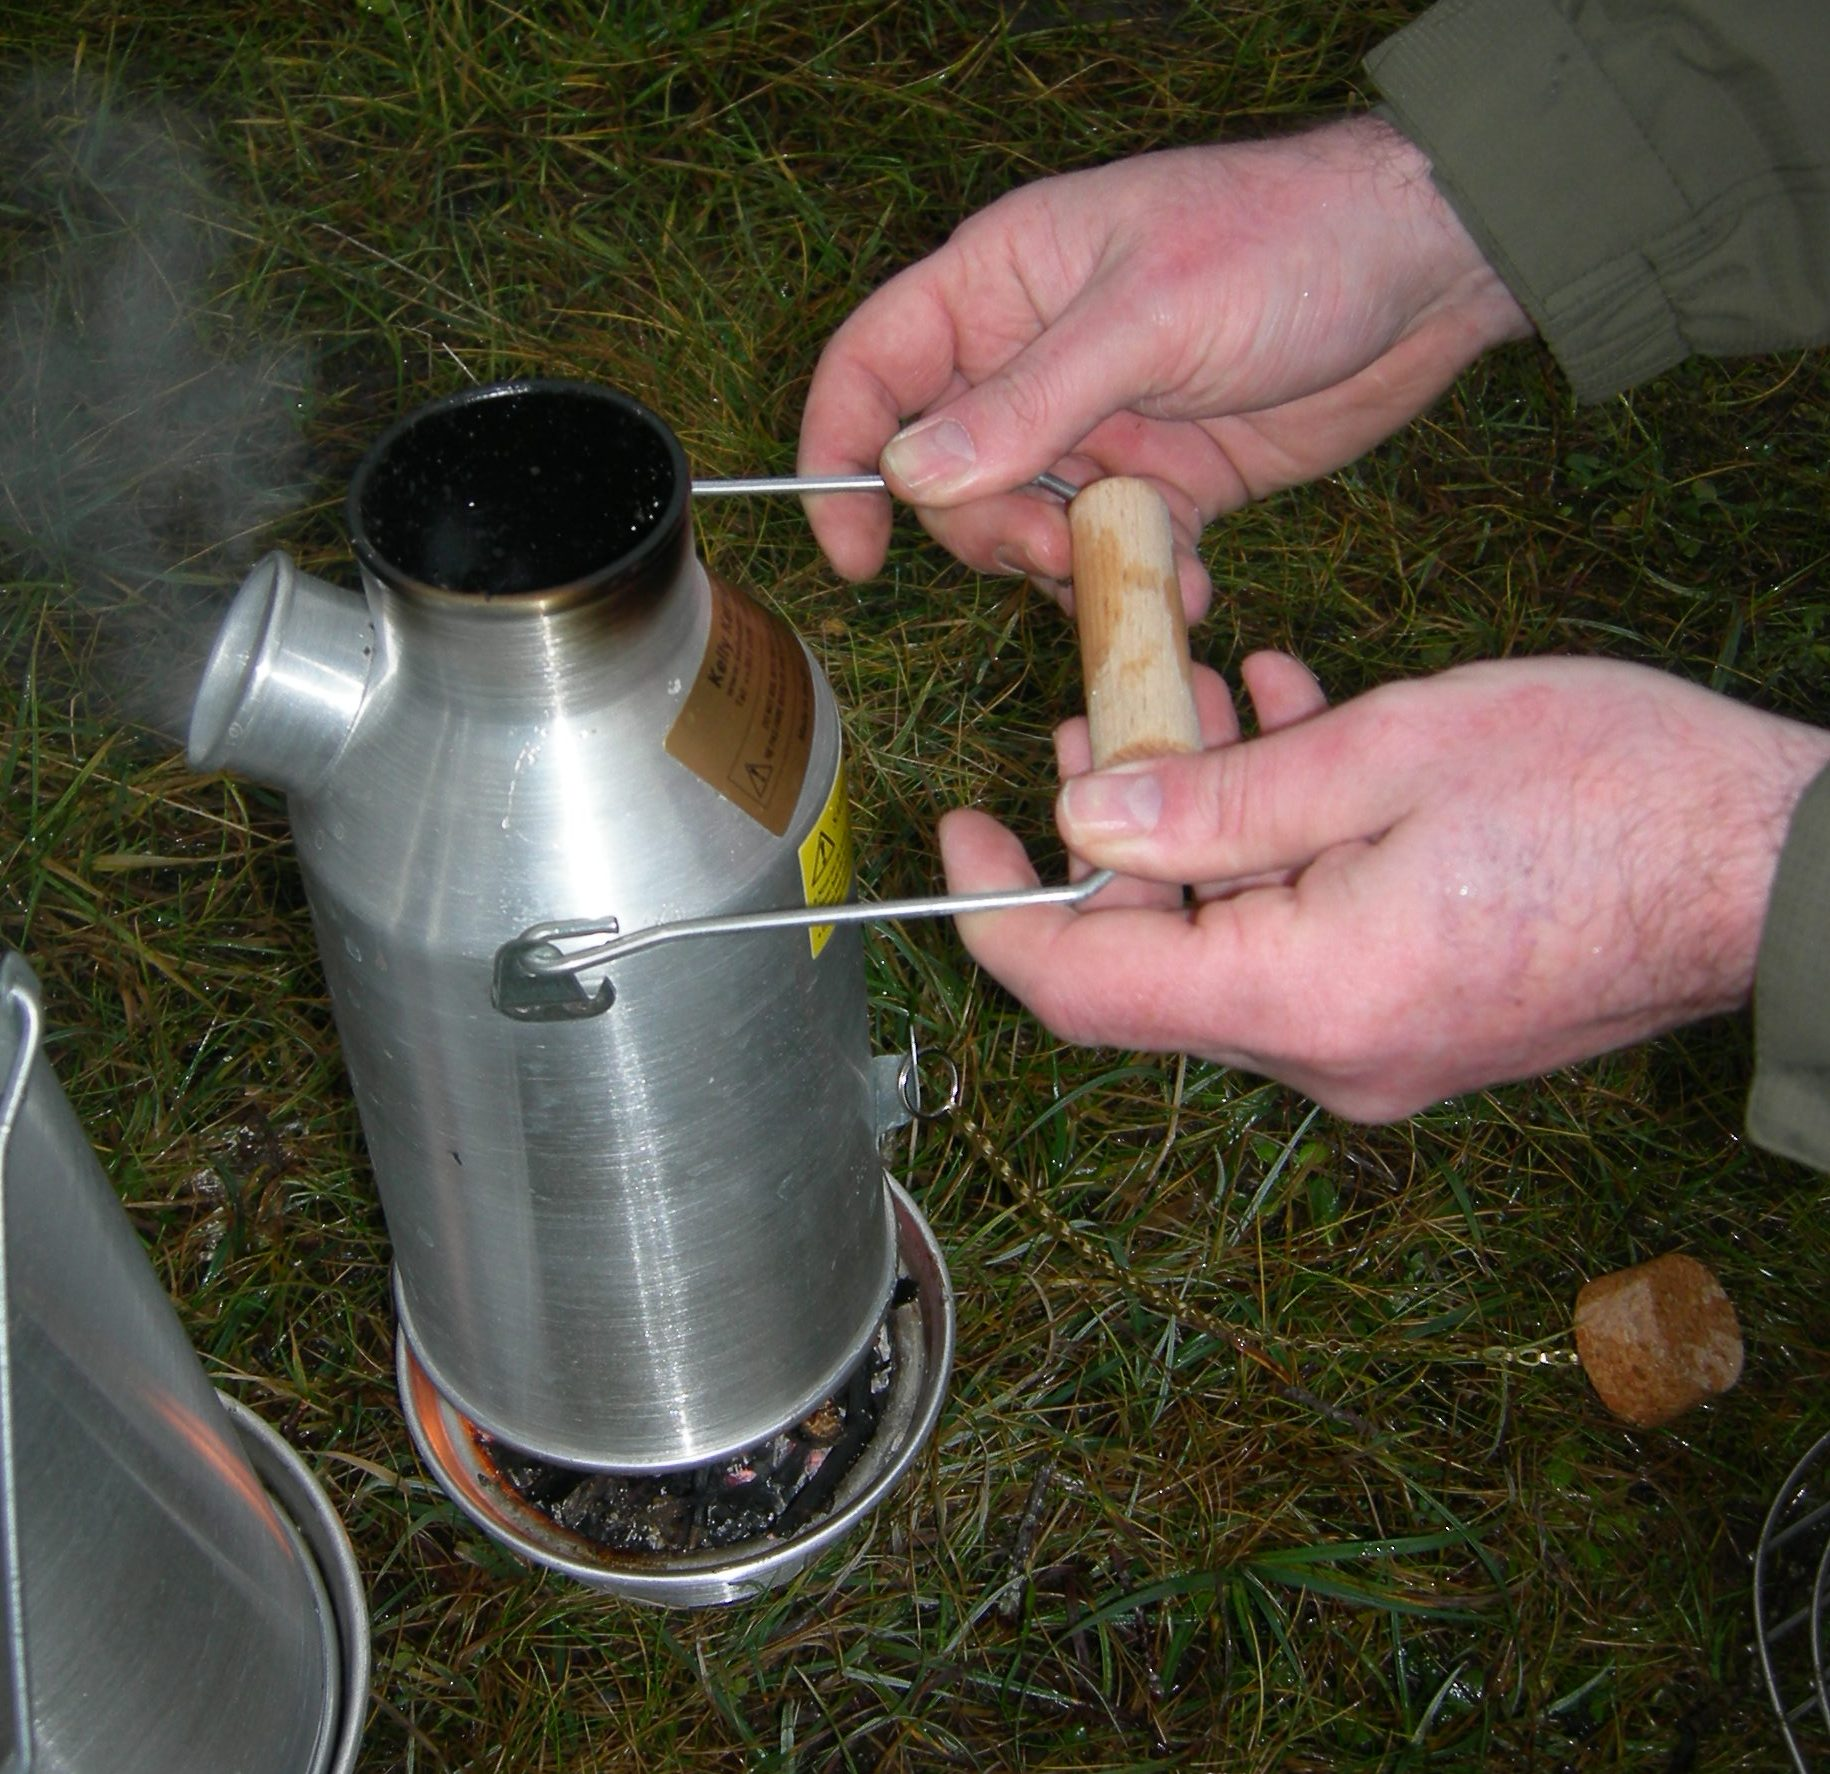 How to lift the Kelly kettle